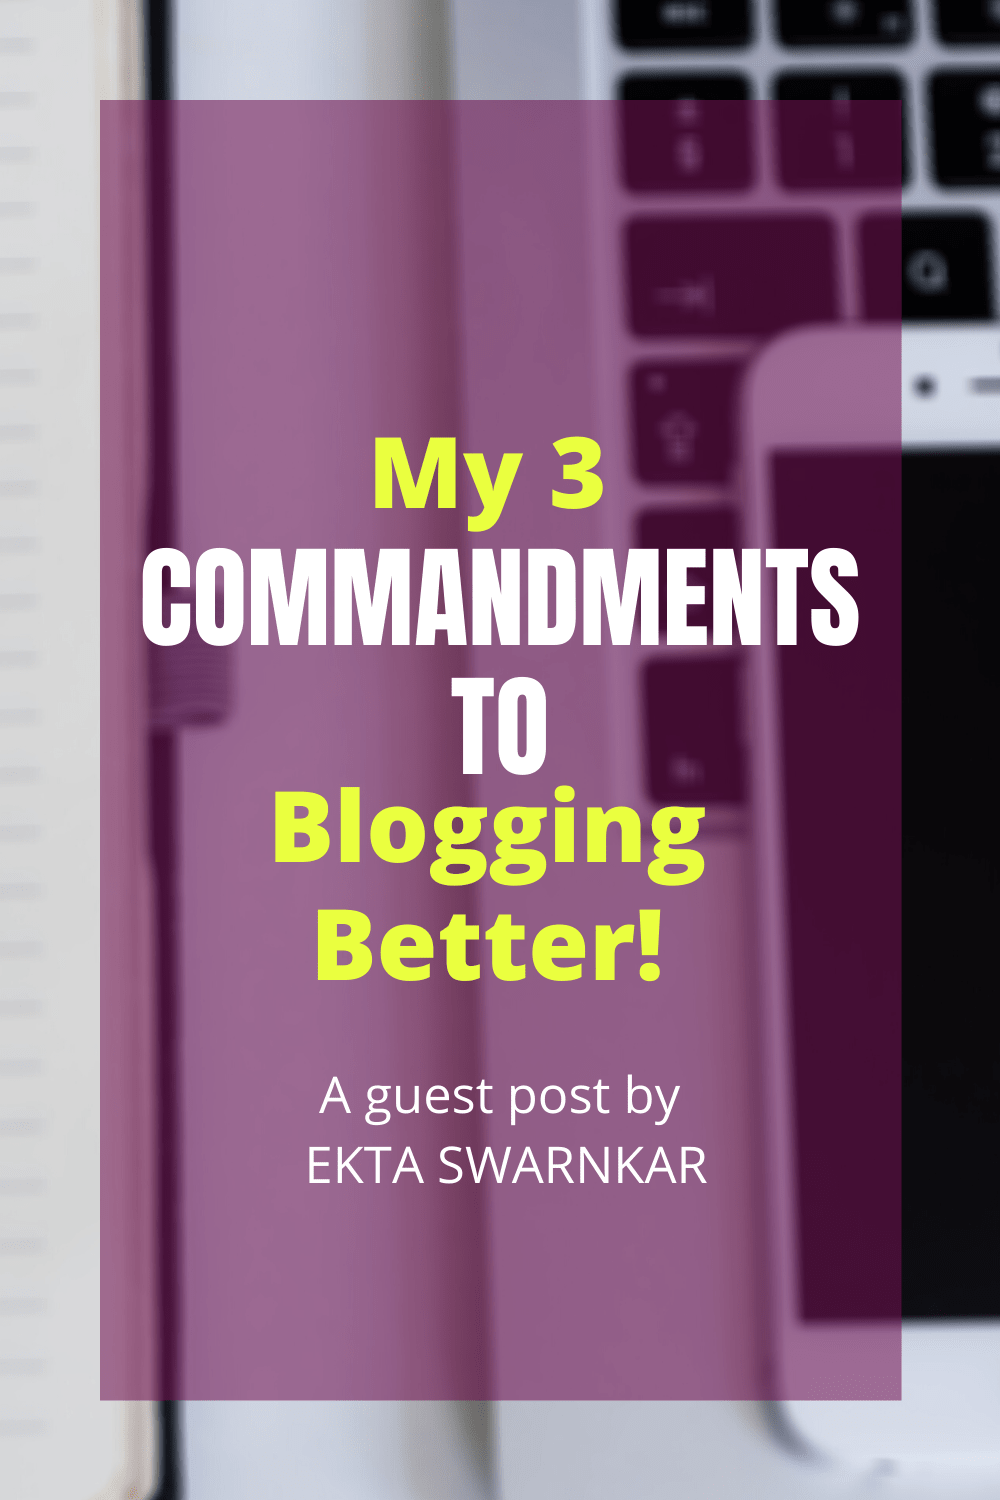 My 3 commandments to min - My 3 Commandments to Blogging Better